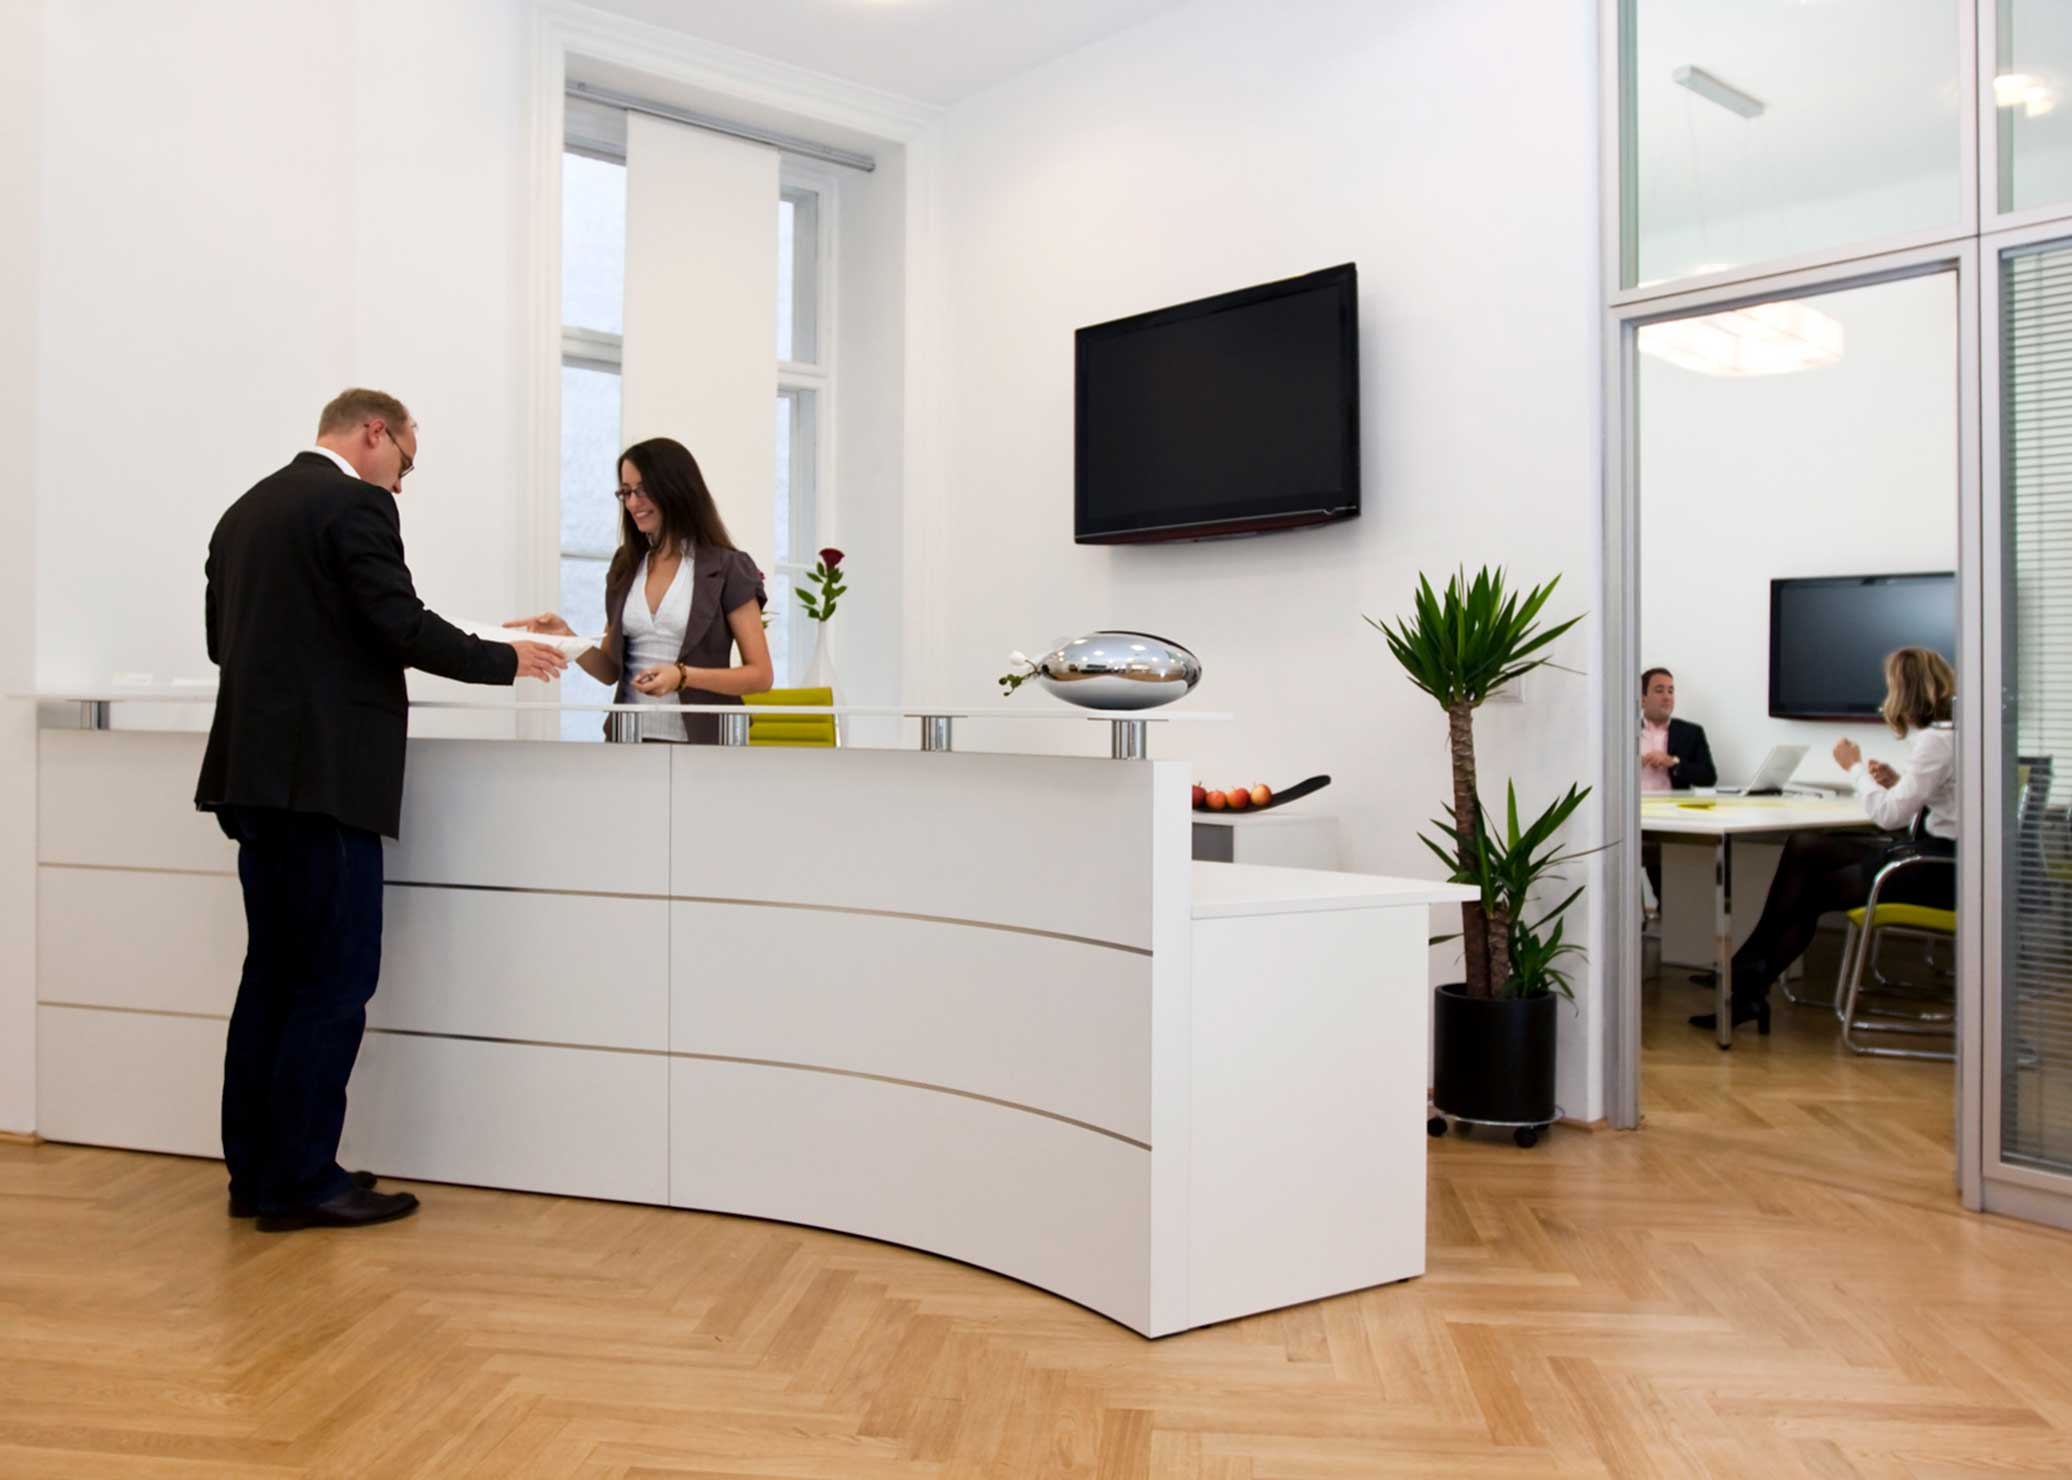 7 receptionist skills that impact an entire firm  Robert Half